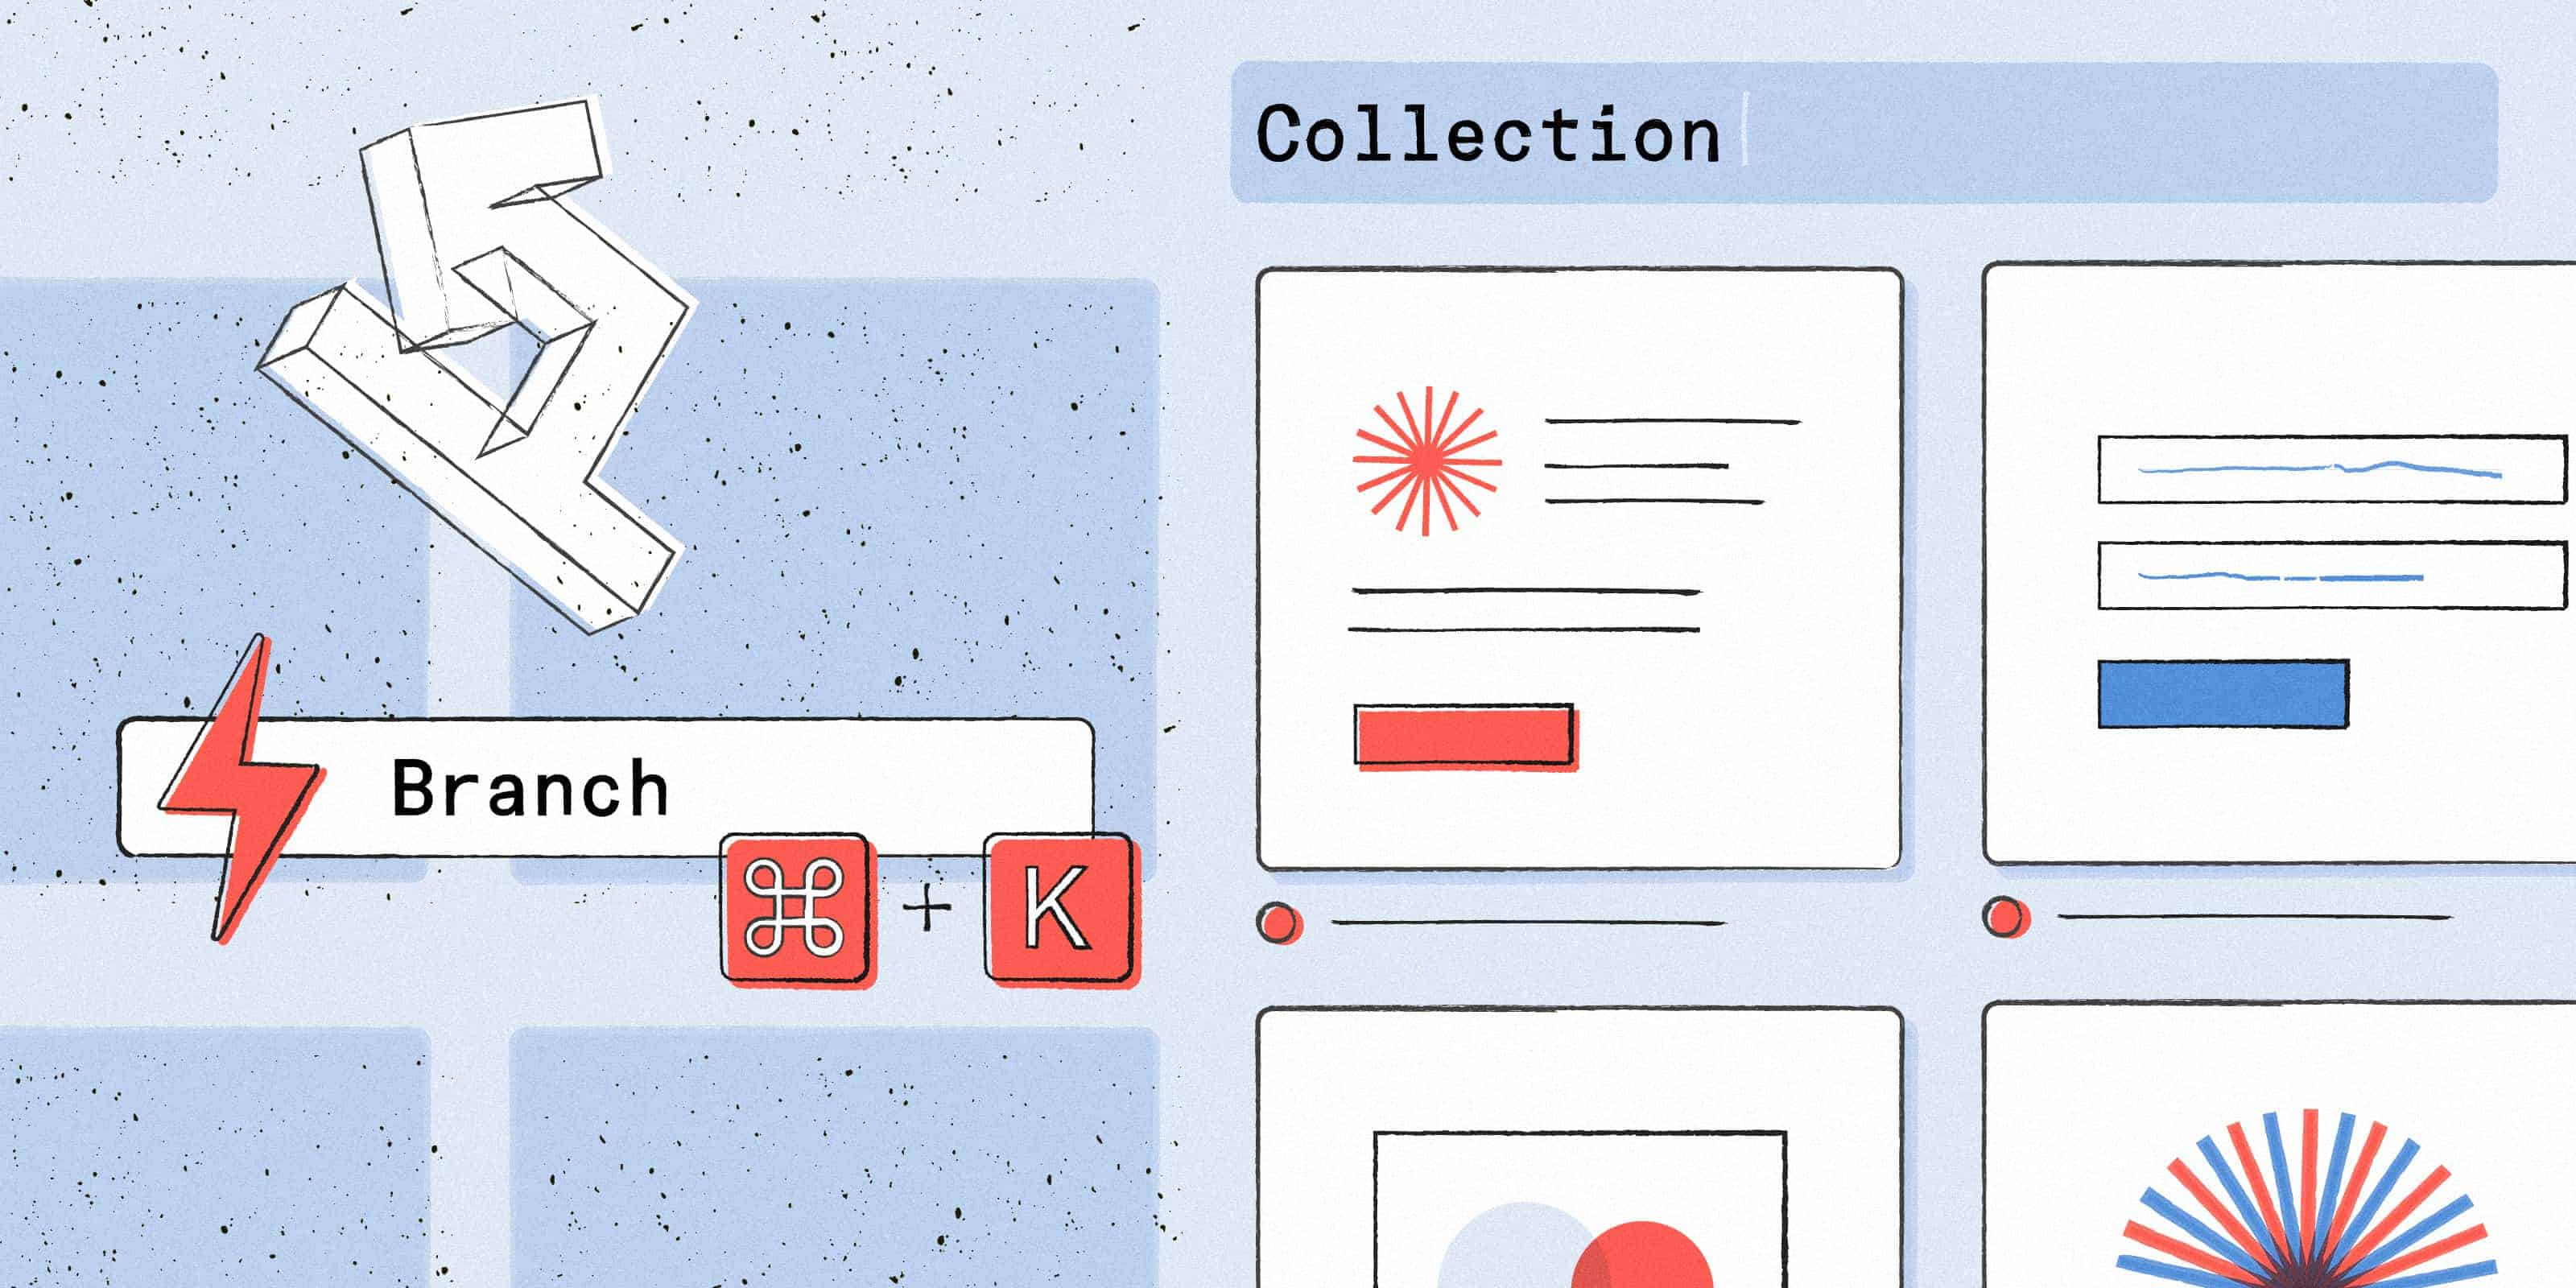 Introducing the Quick Jump and inline editing for Collections